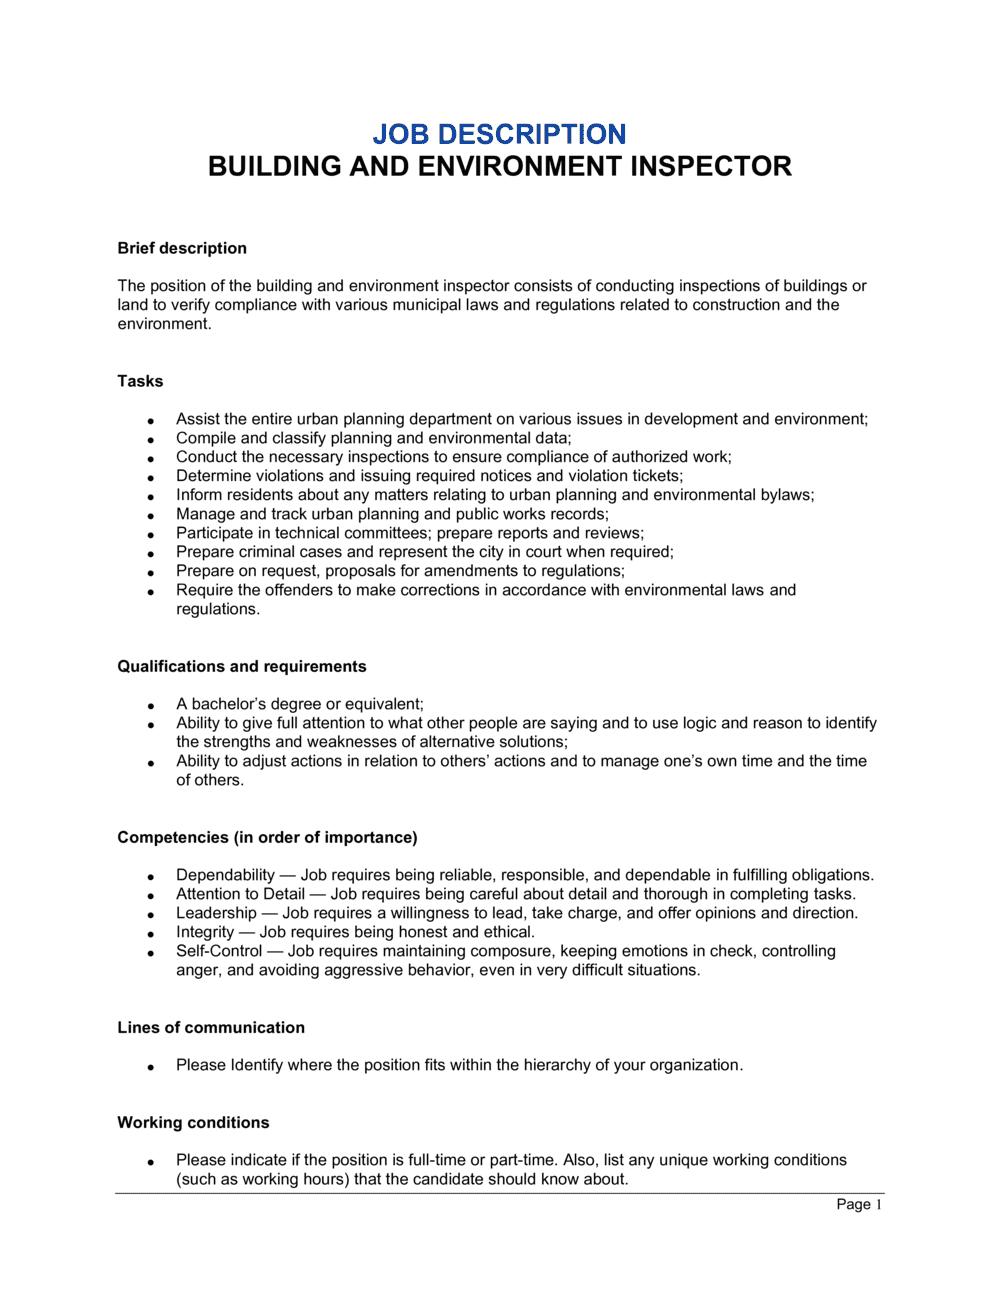 Business-in-a-Box's Building and Environment Inspector Job Description Template